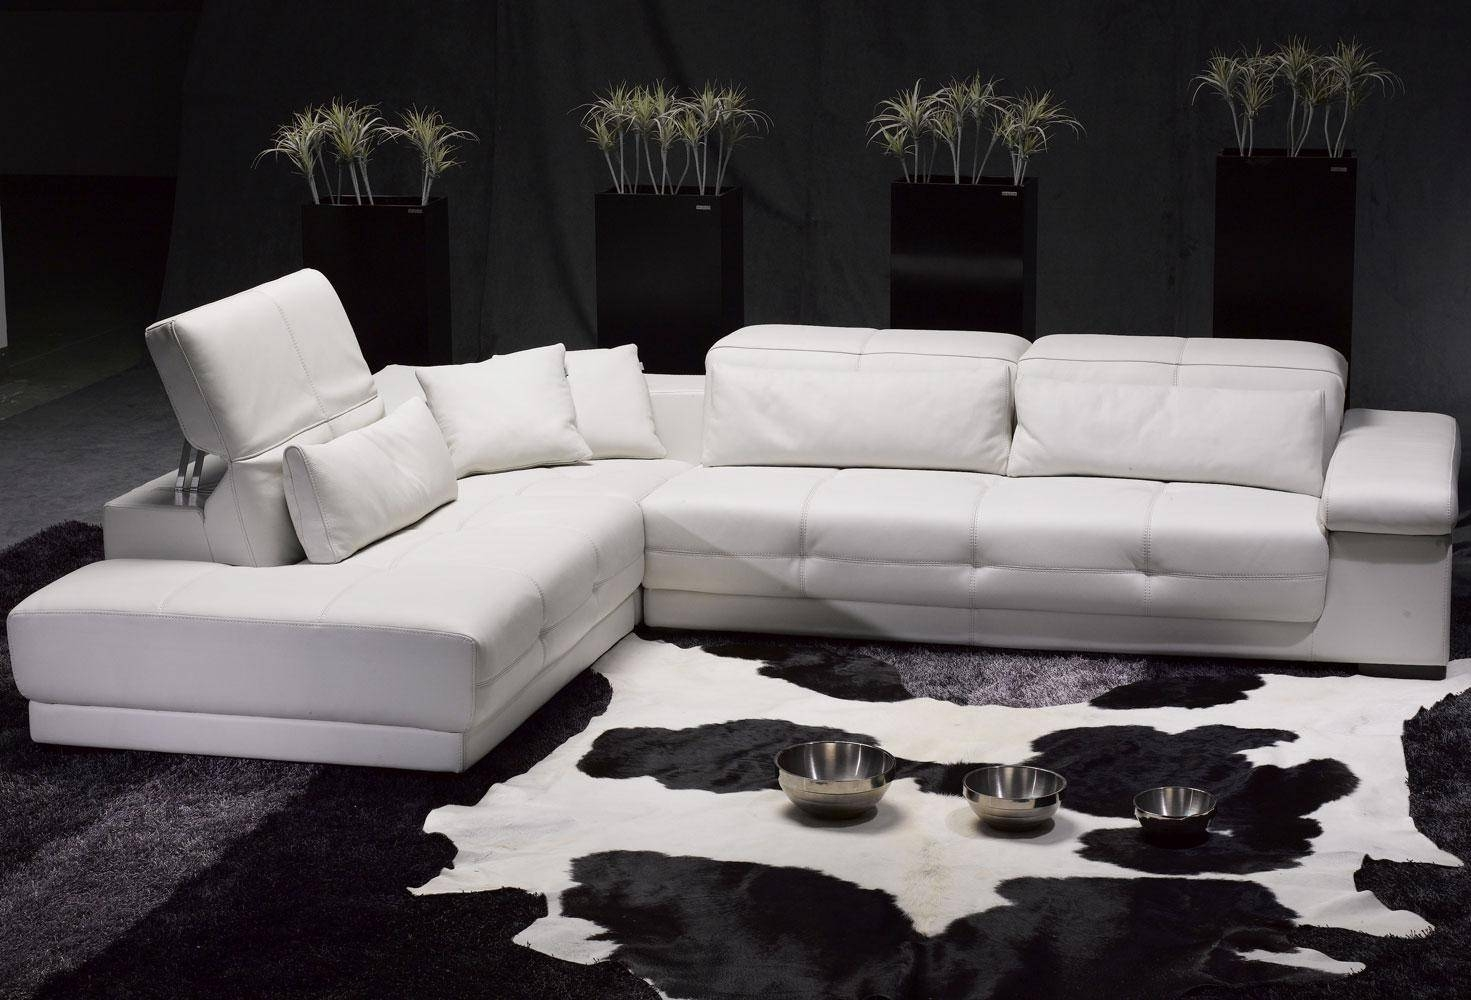 White Sectional Sofa | Home Designjohn throughout Black and White Sectional Sofa (Image 29 of 30)